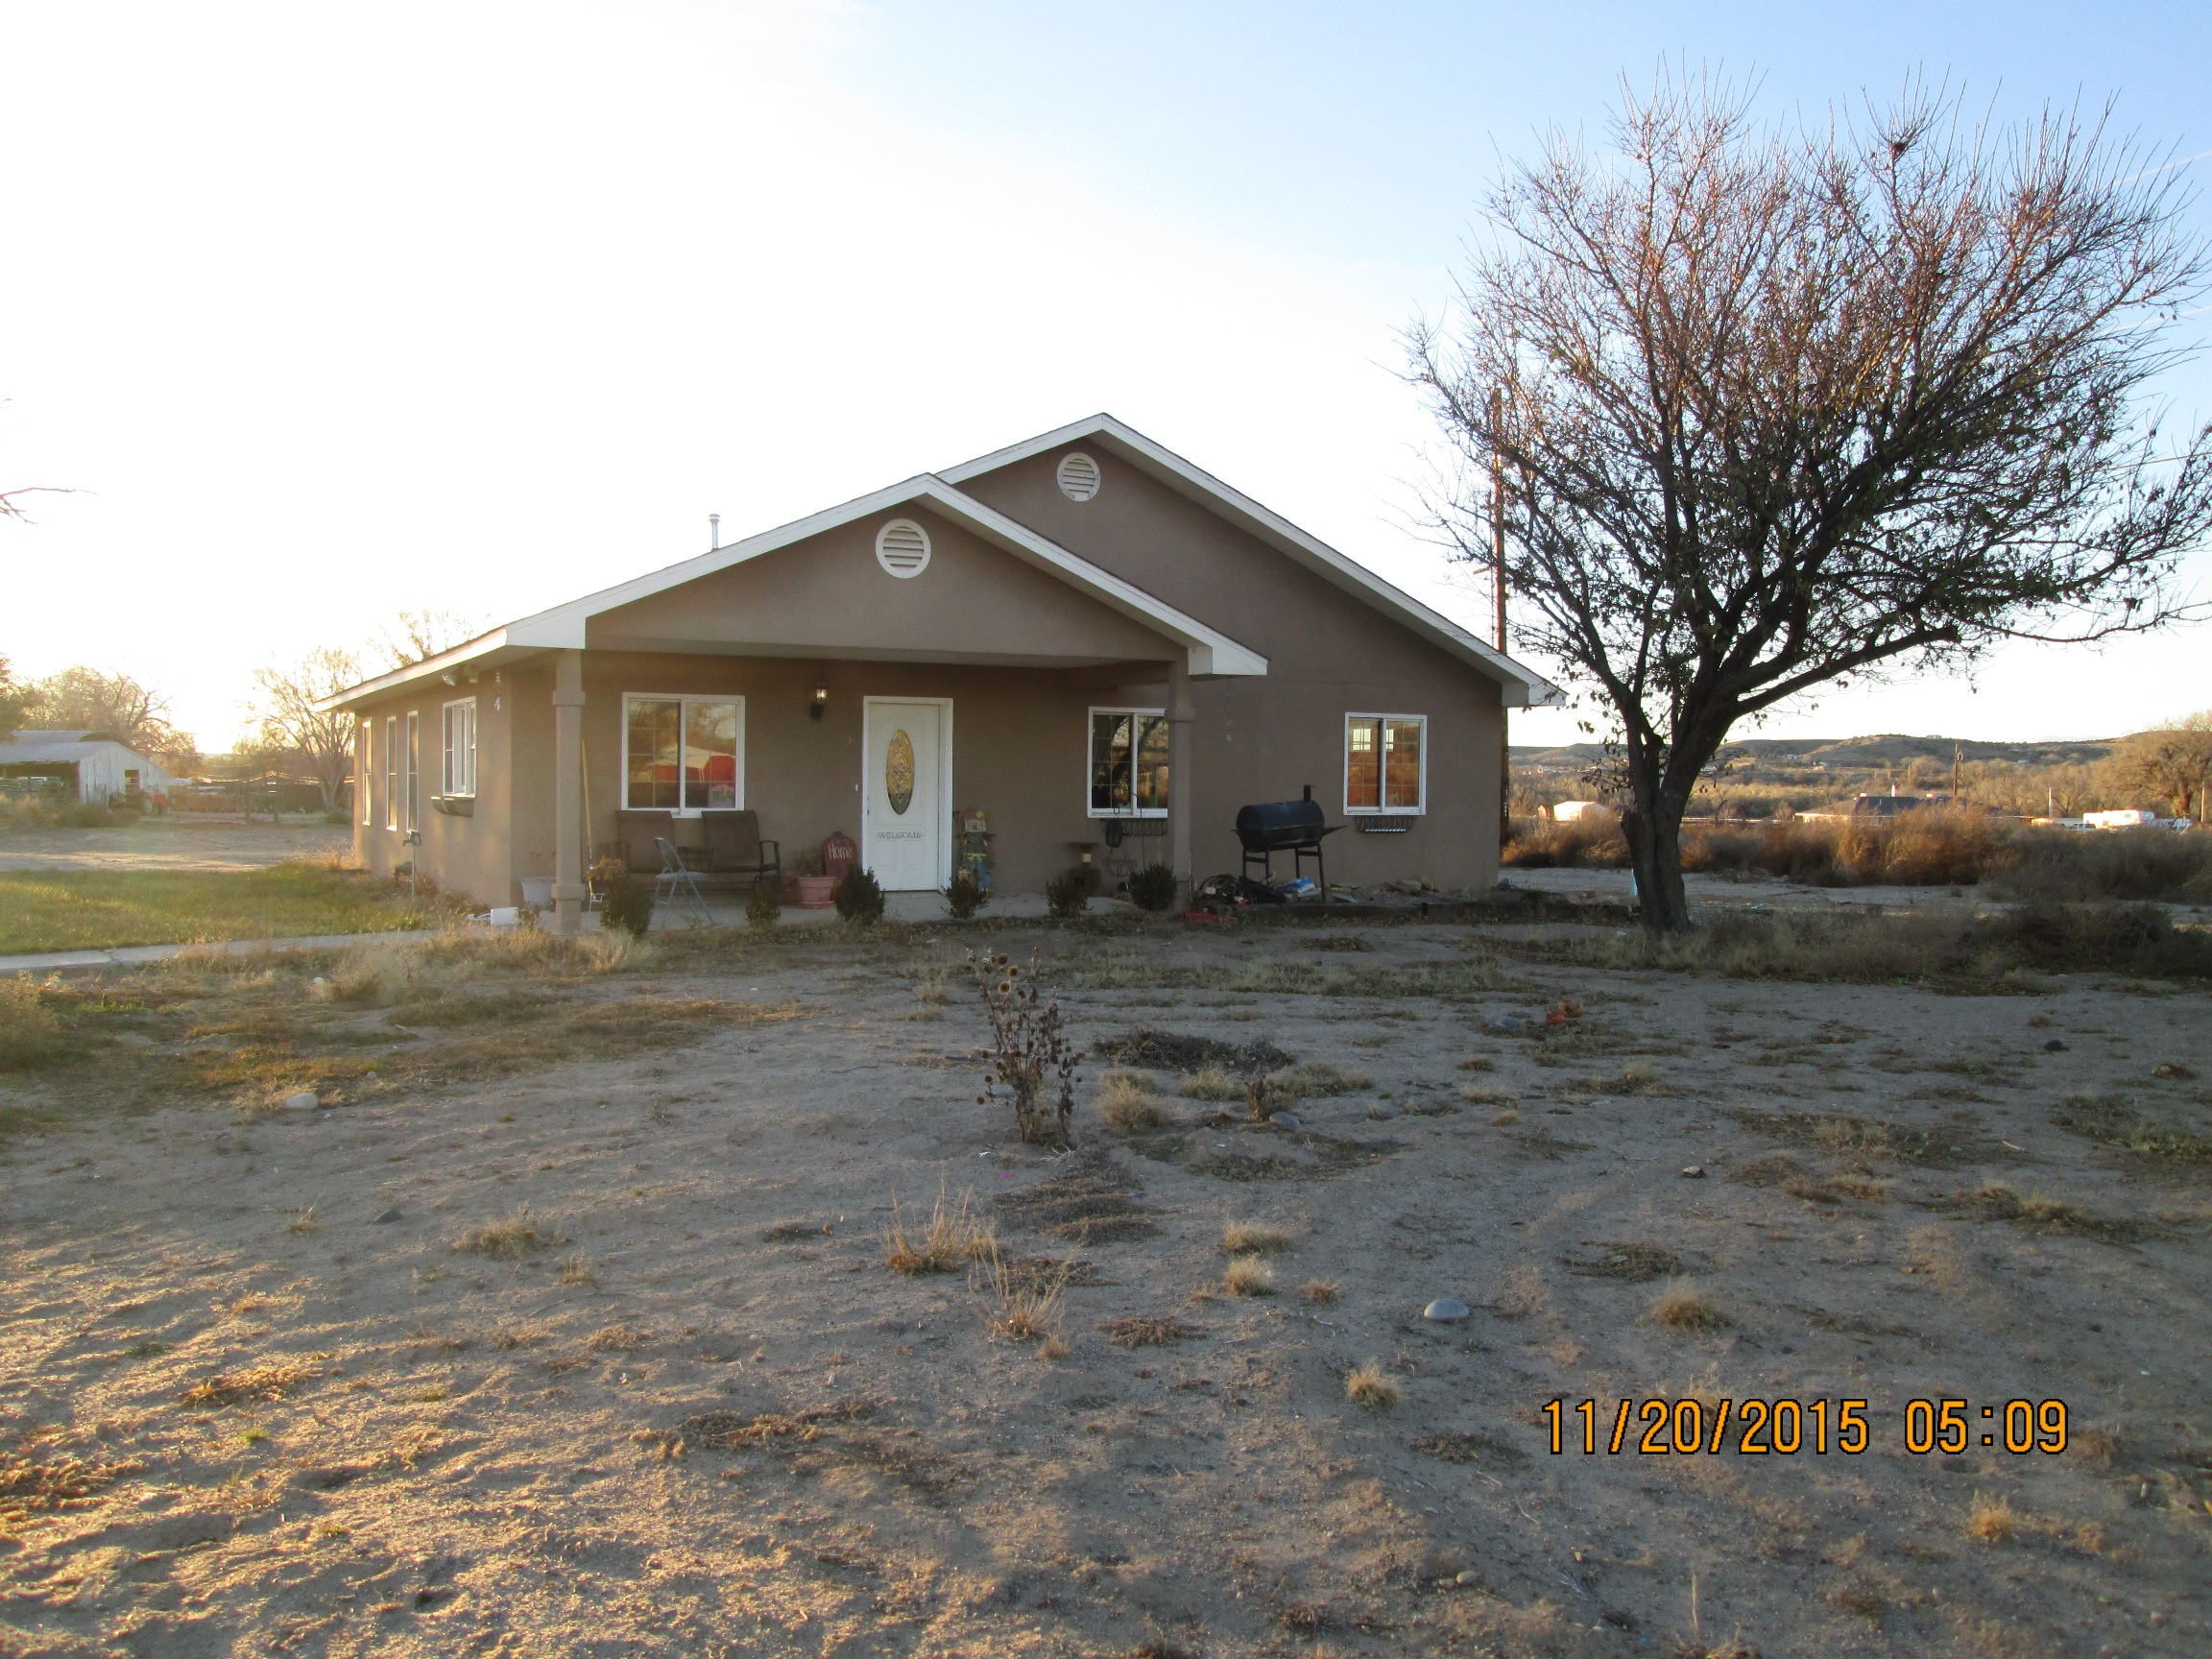 5 Road 5015, Bloomfield, New Mexico 87413